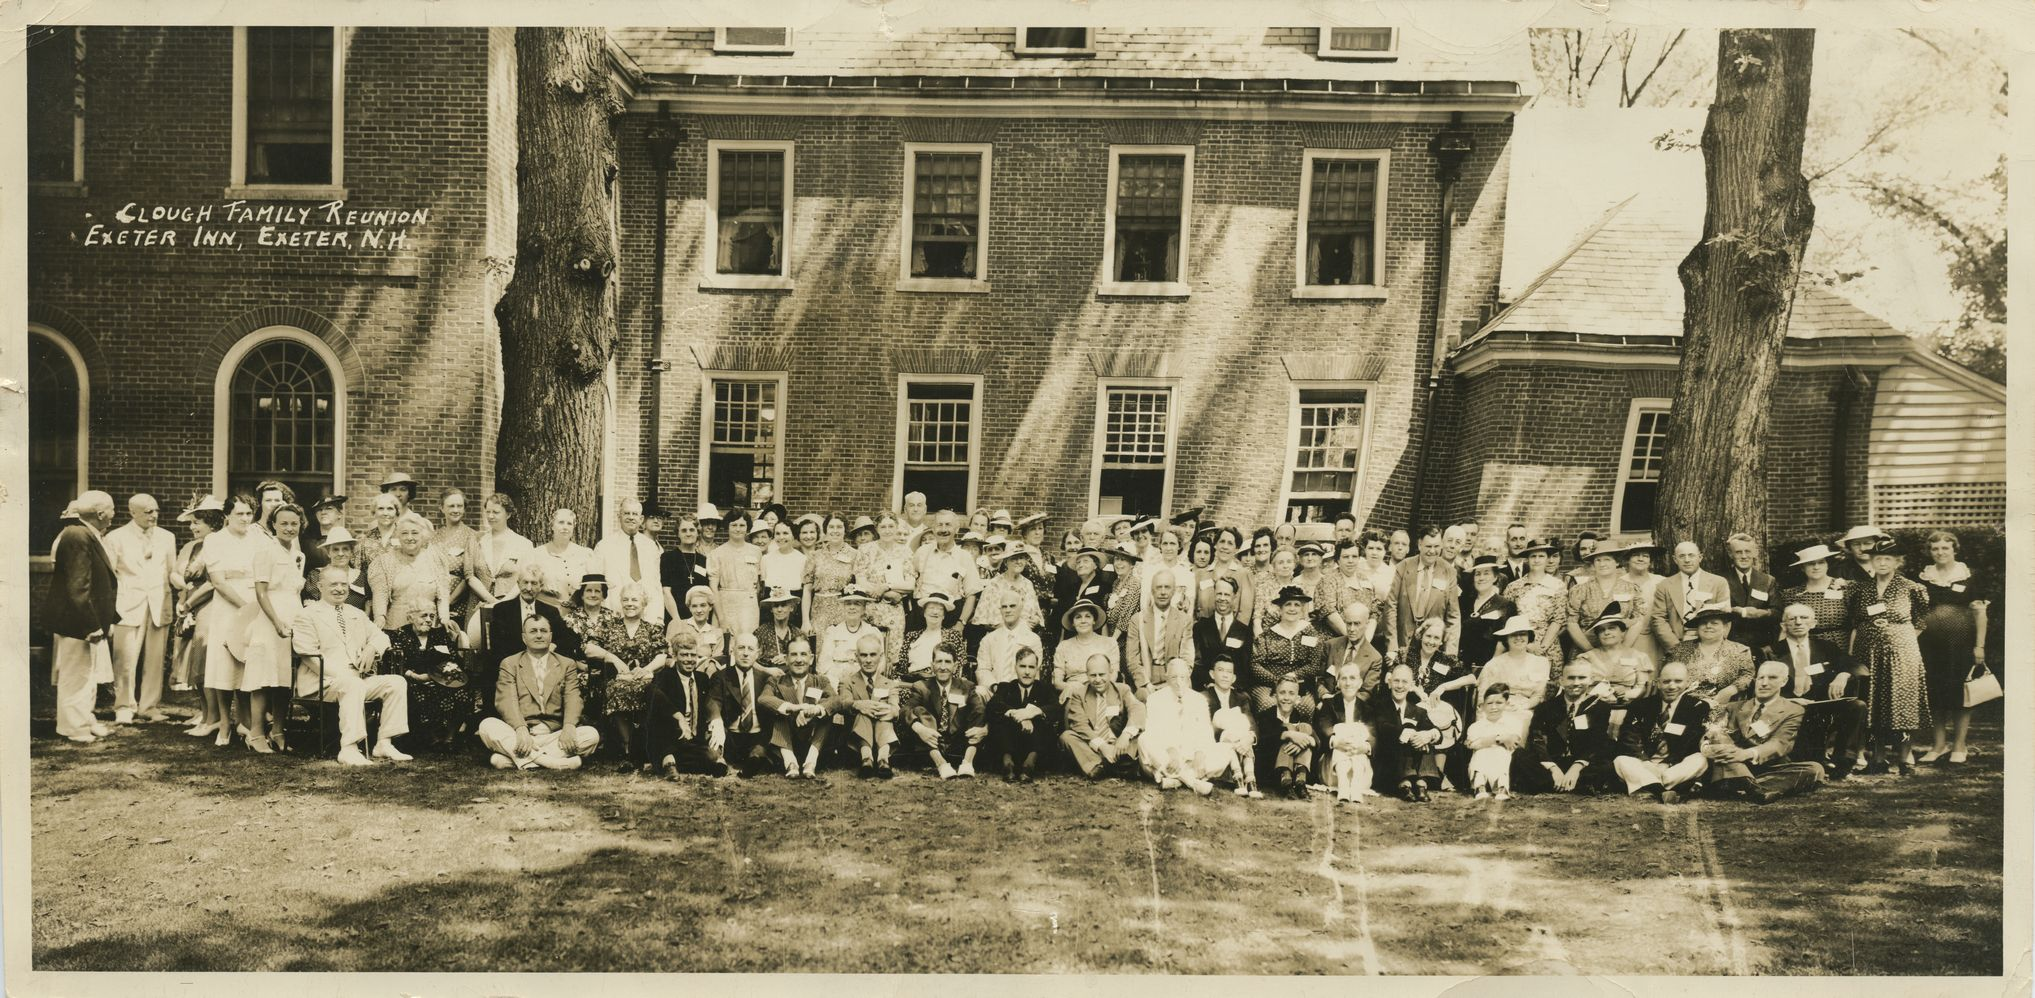 Clough Family Reunion, Exeter Inn, Exeter, NH, Circa 1940